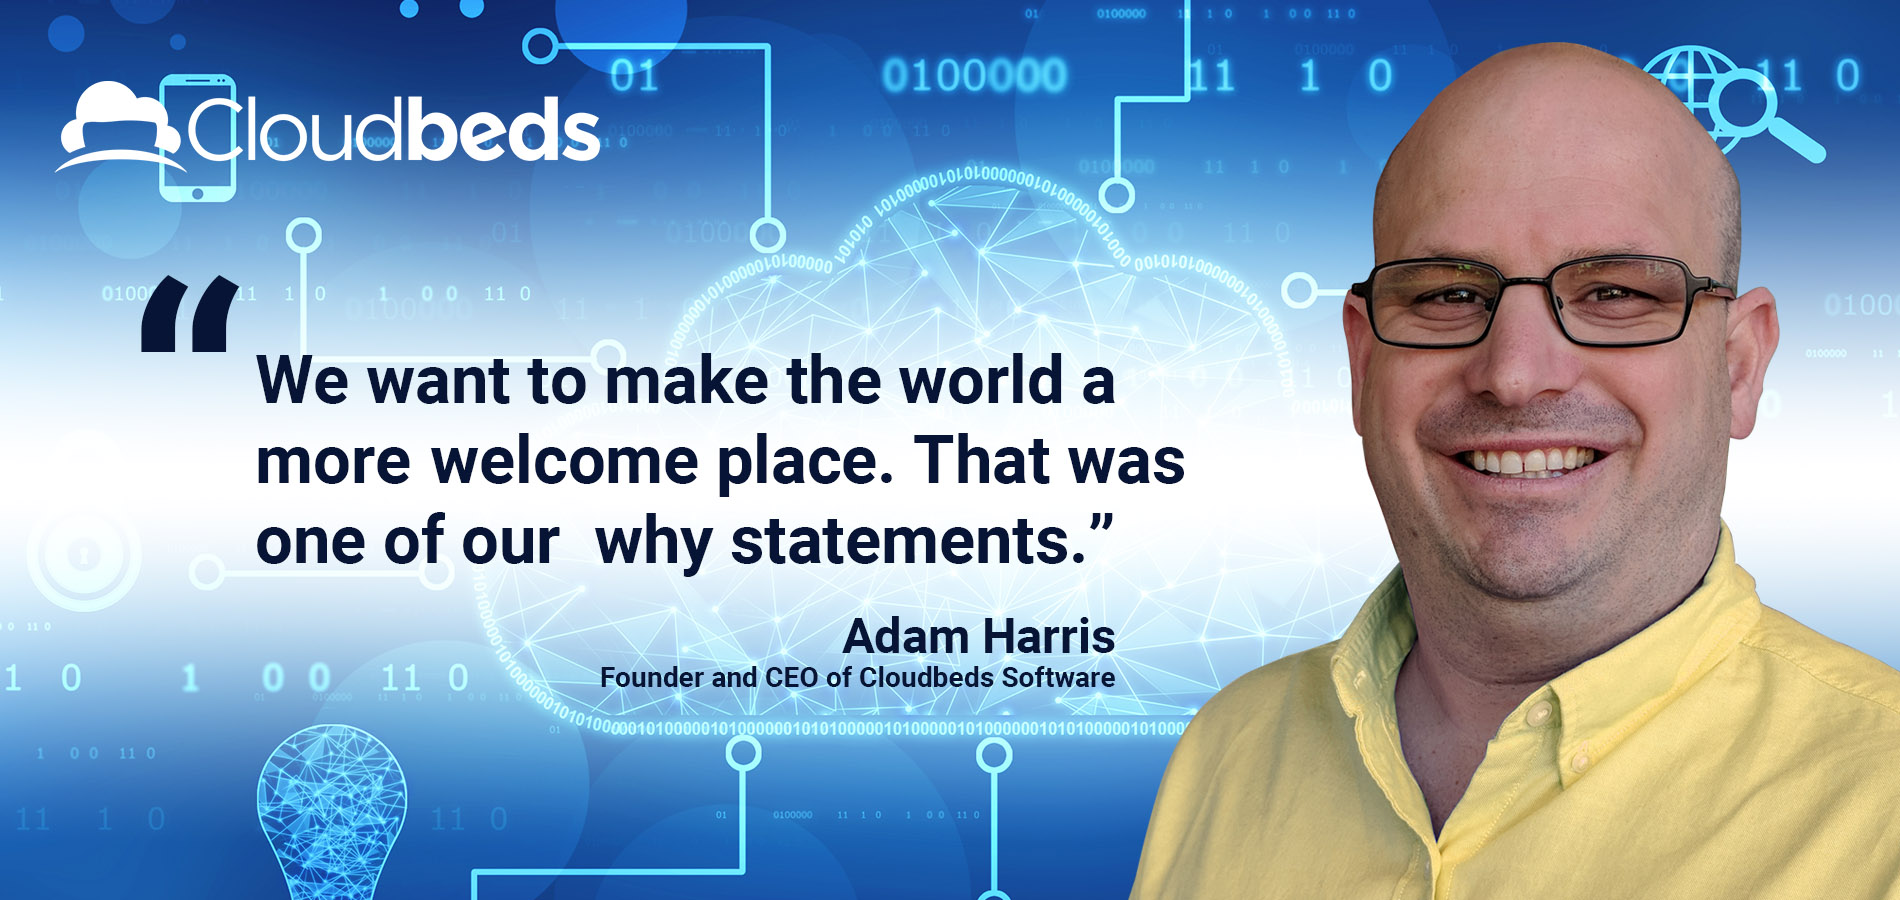 hotel management system, cloudbeds software ceo quoted